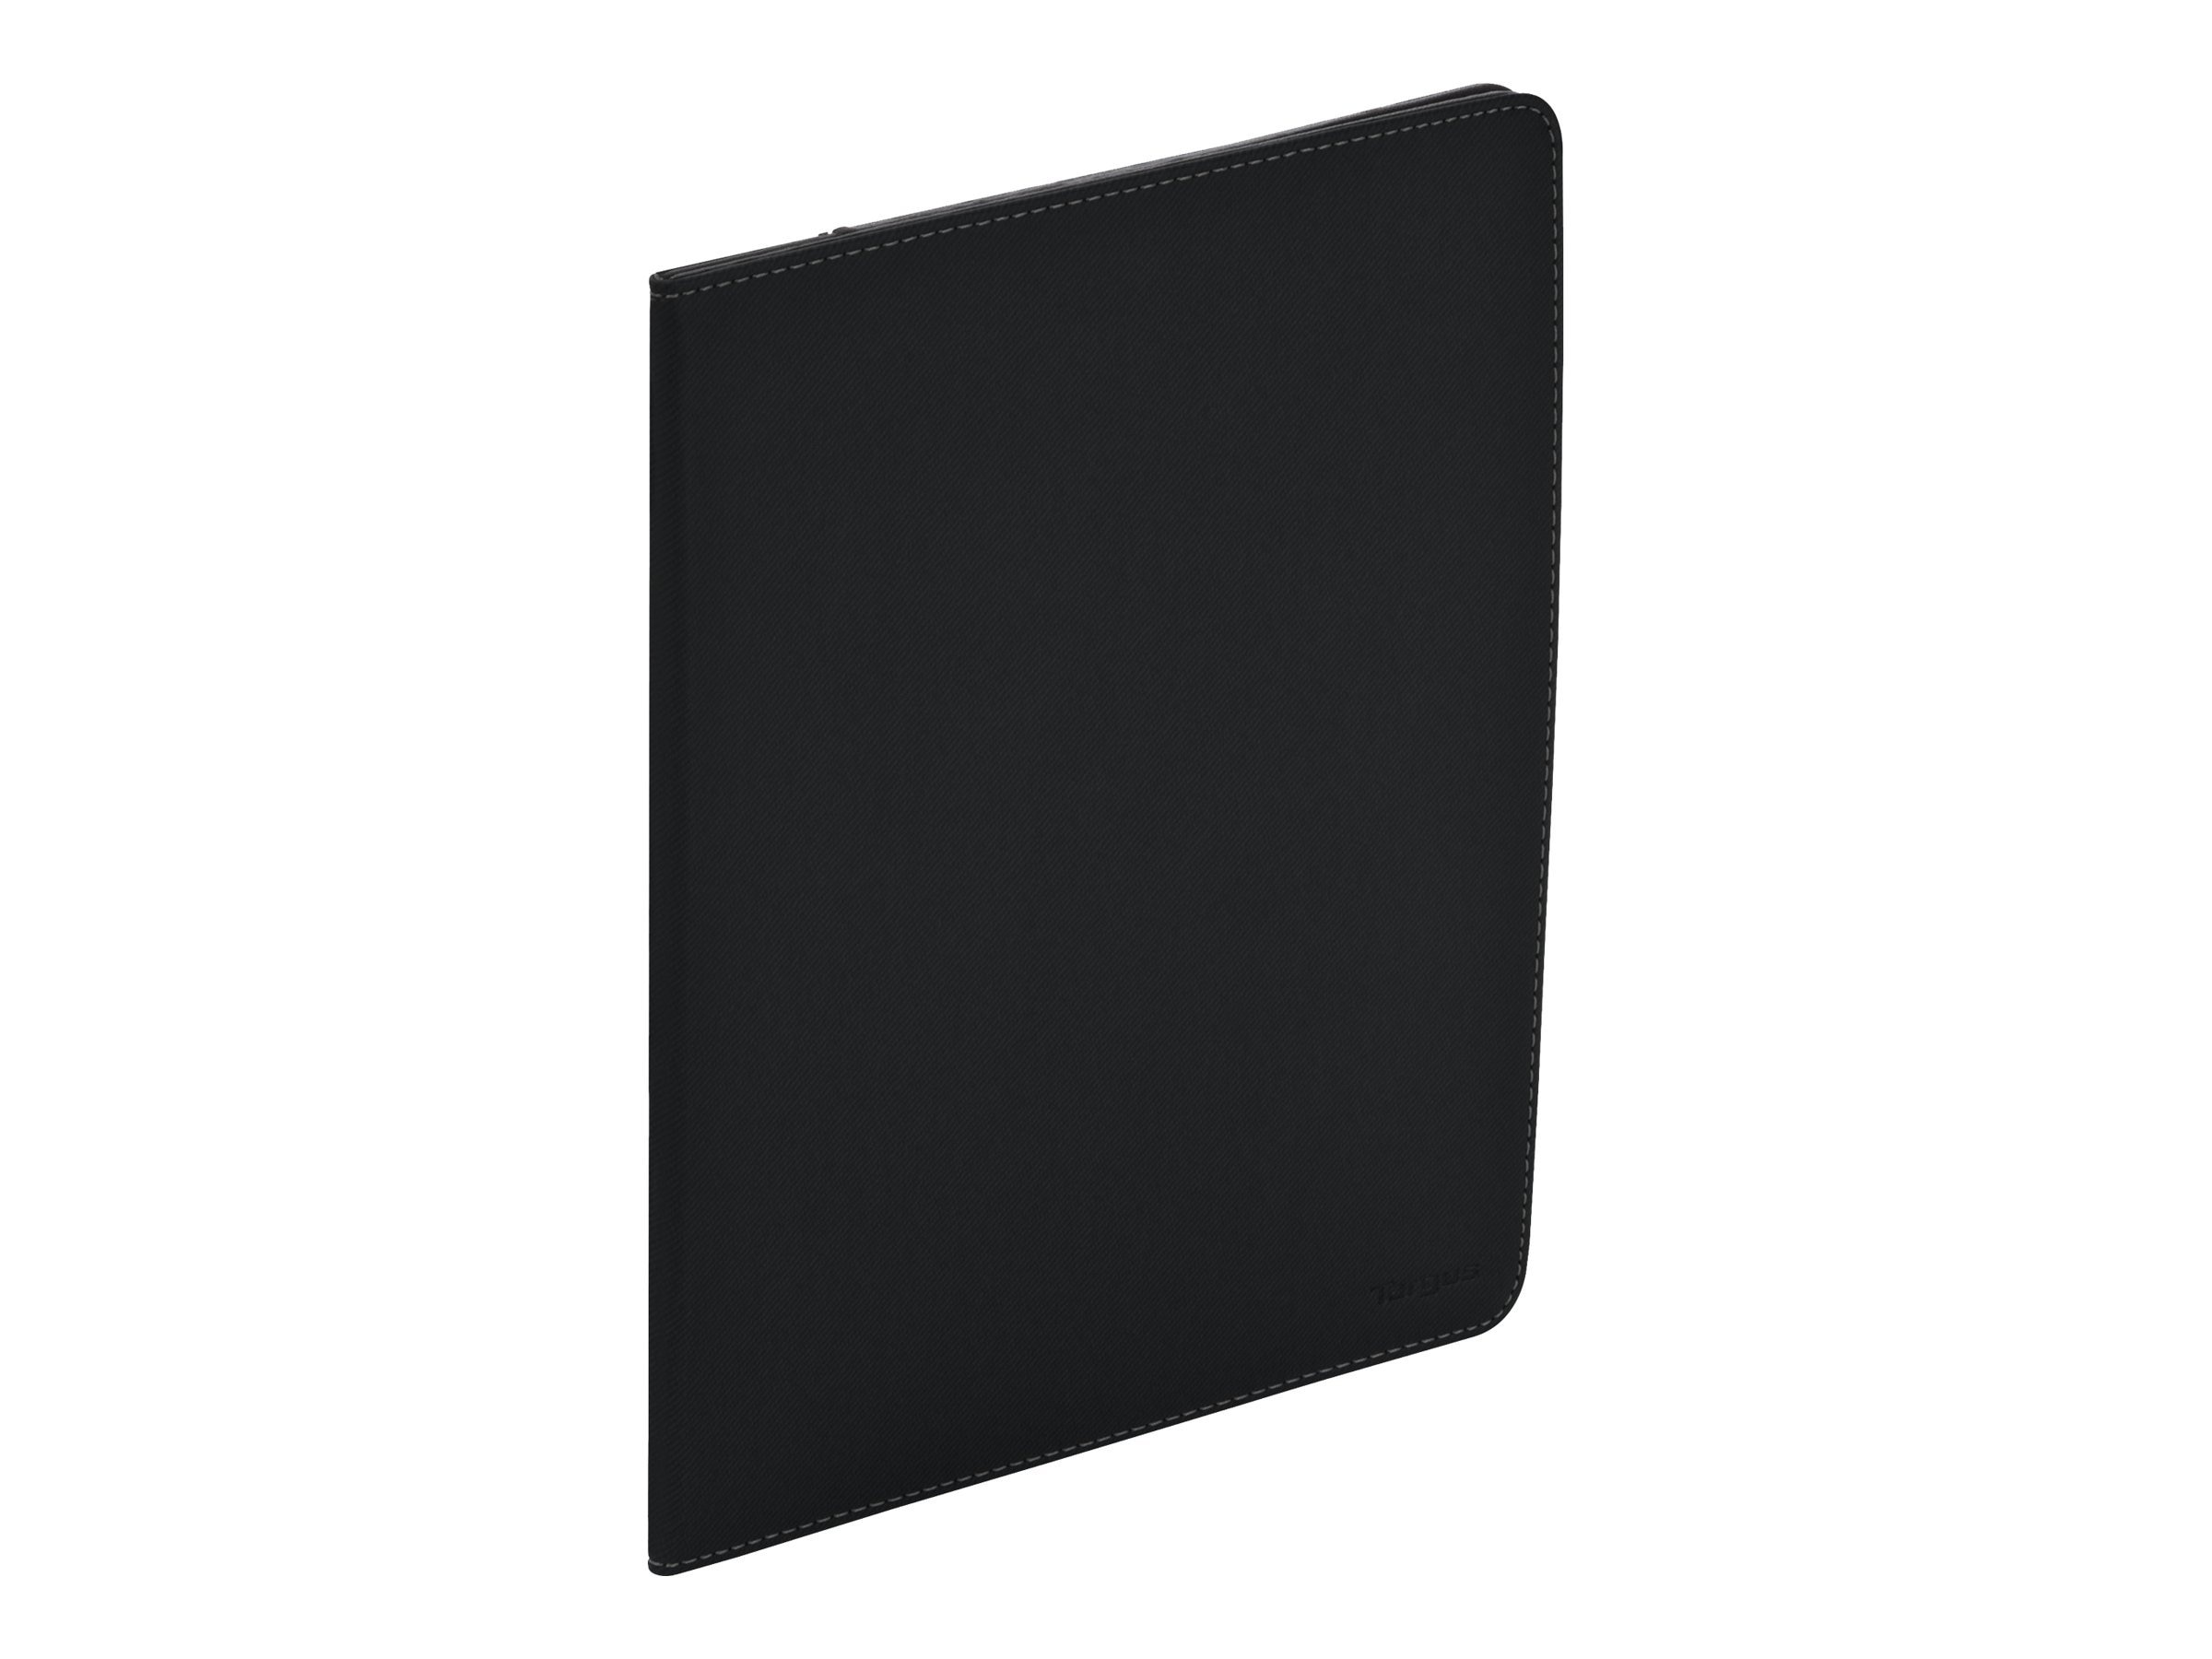 Targus Simply Basic Cover for iPad 3, Black, THZ158US, 13765176, Carrying Cases - Tablets & eReaders